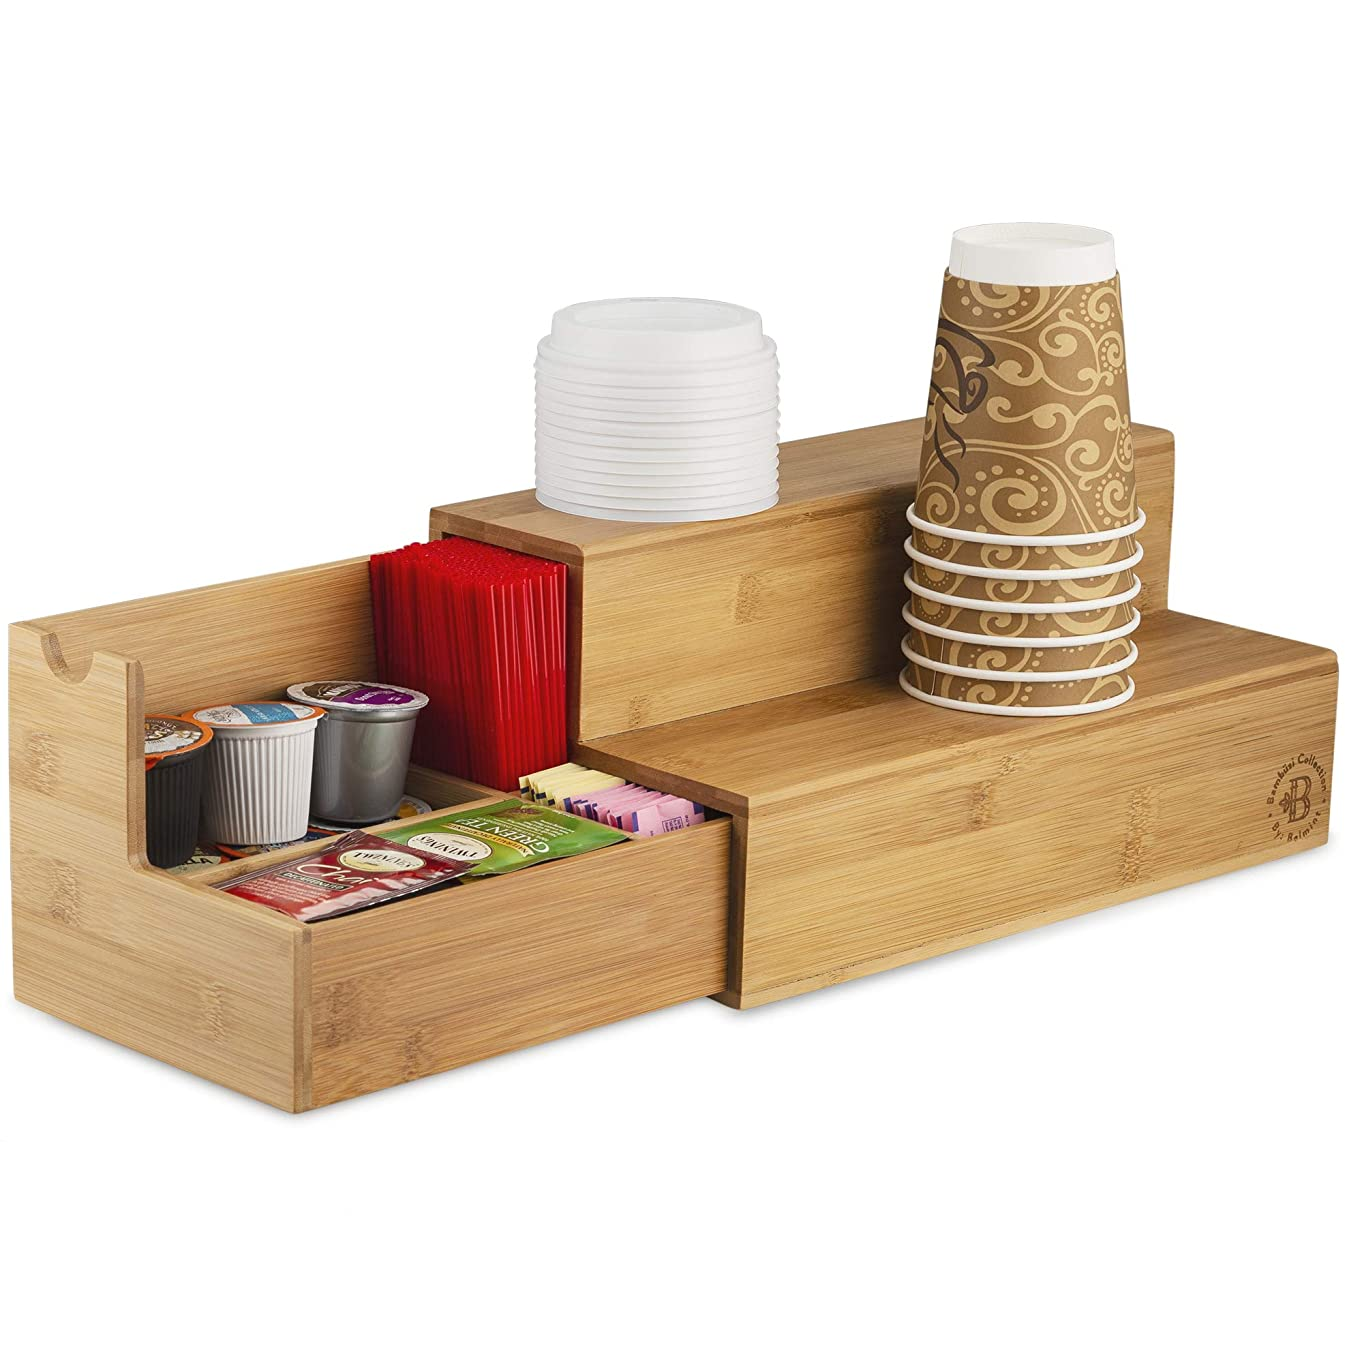 Coffee Tea Organizer Station - Bamboo Condiment and Accessories Caddy Organizer | for Kitchen and Office Organization